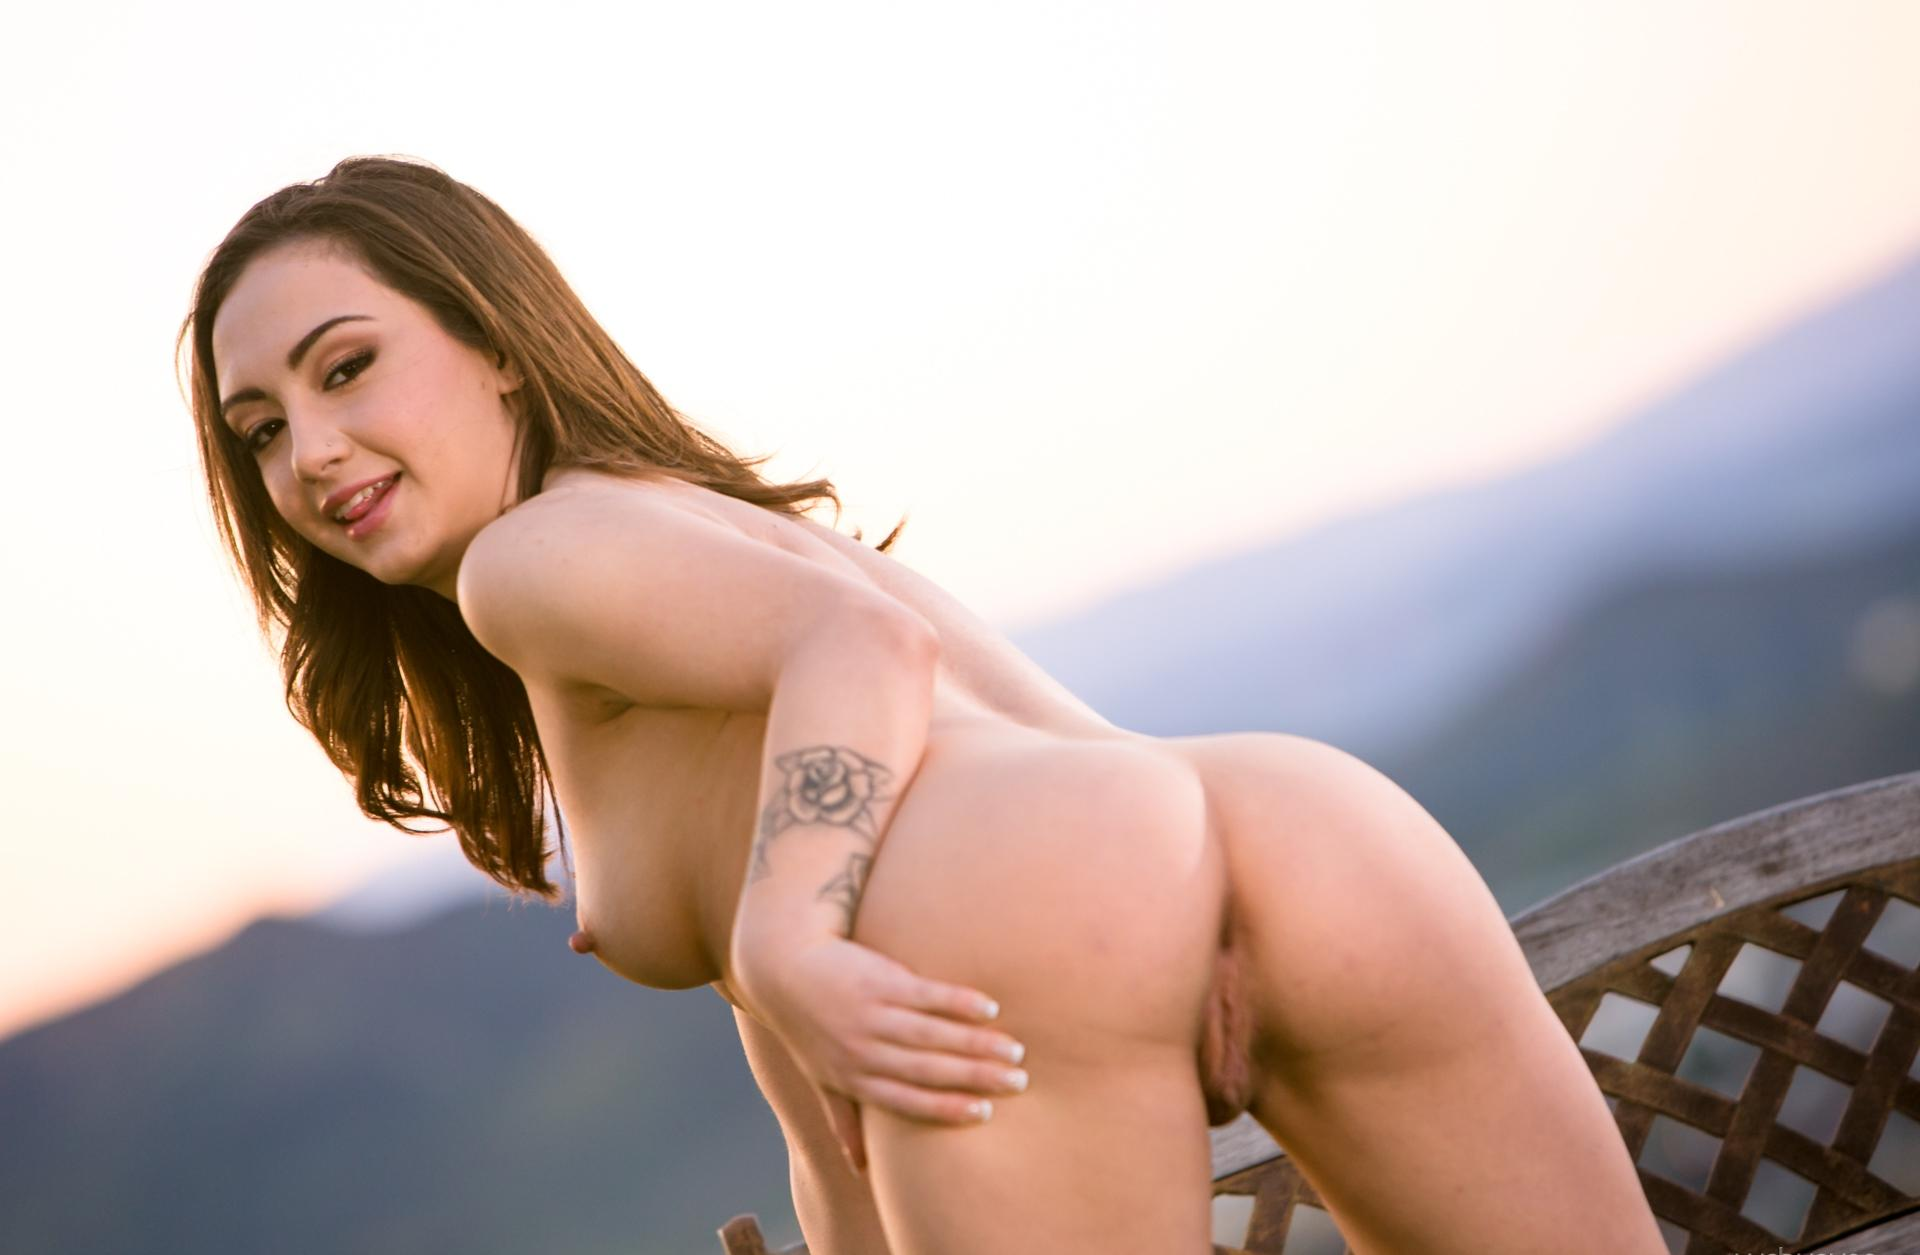 Lily Jordan all american cutie Lily Jordan flashing her vag and tits in front of a wonderful landscape 5